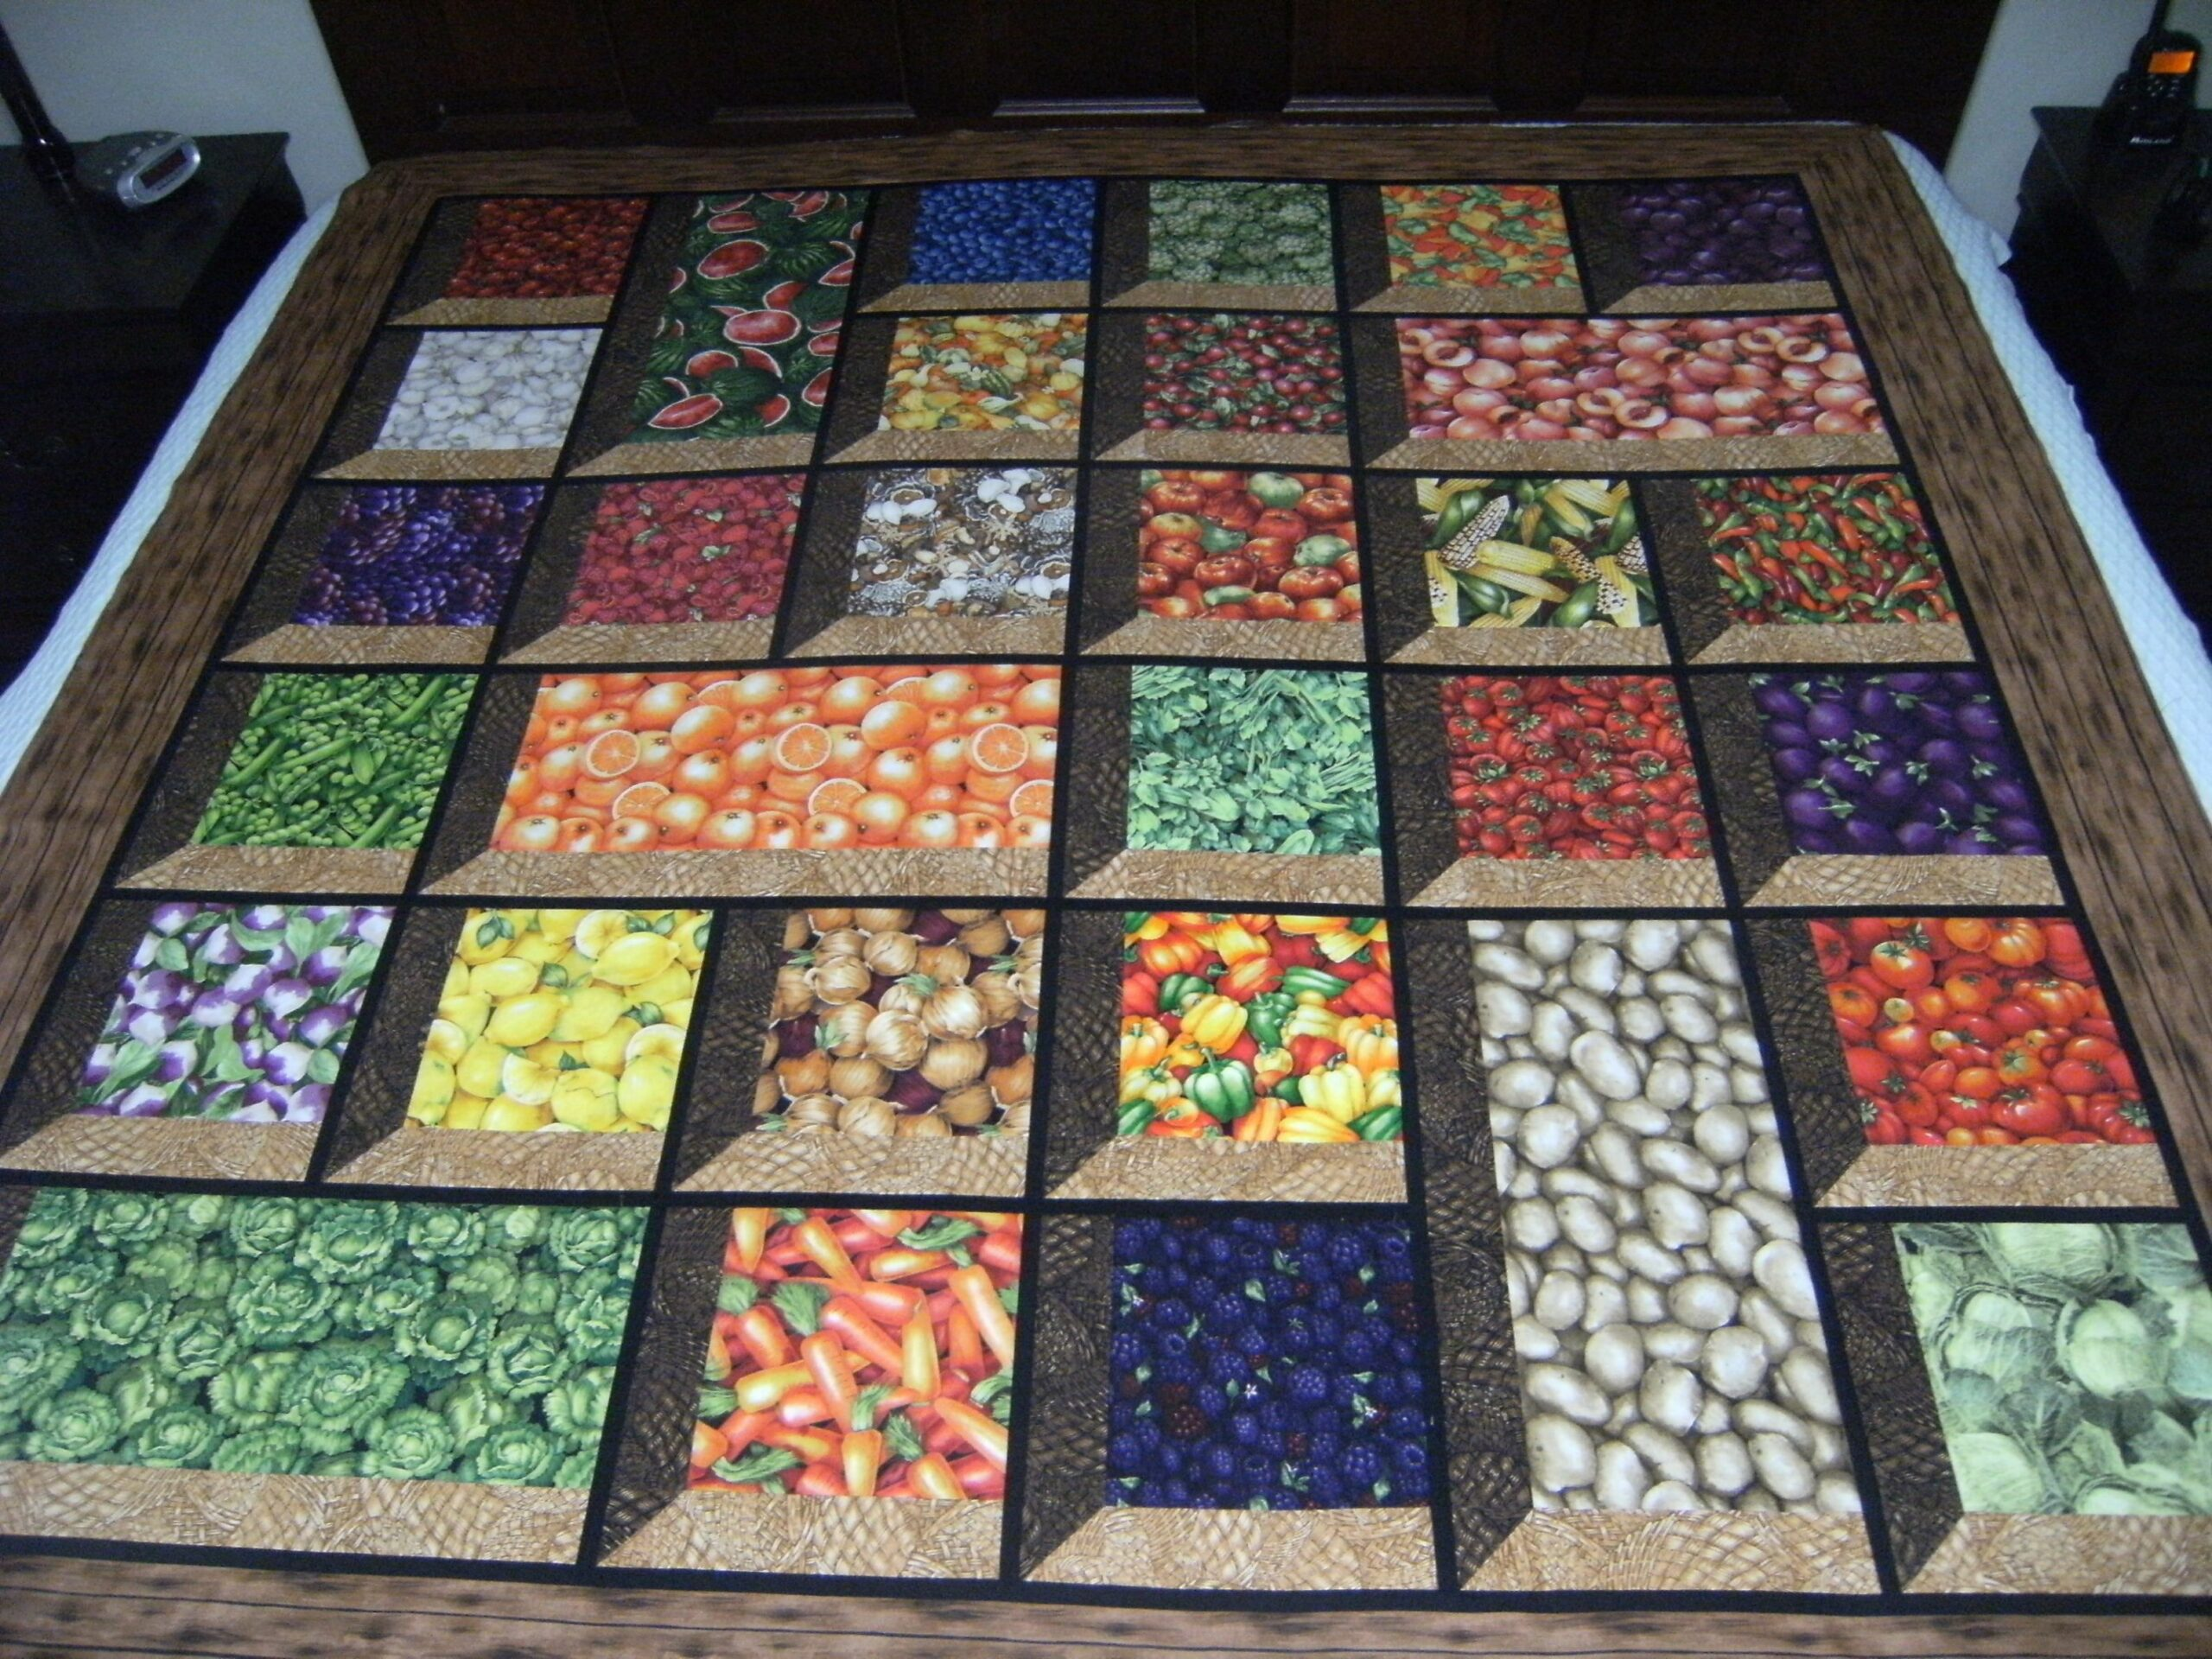 Fruits Vegetables in attic windows from Quilting Board | Picnic ..